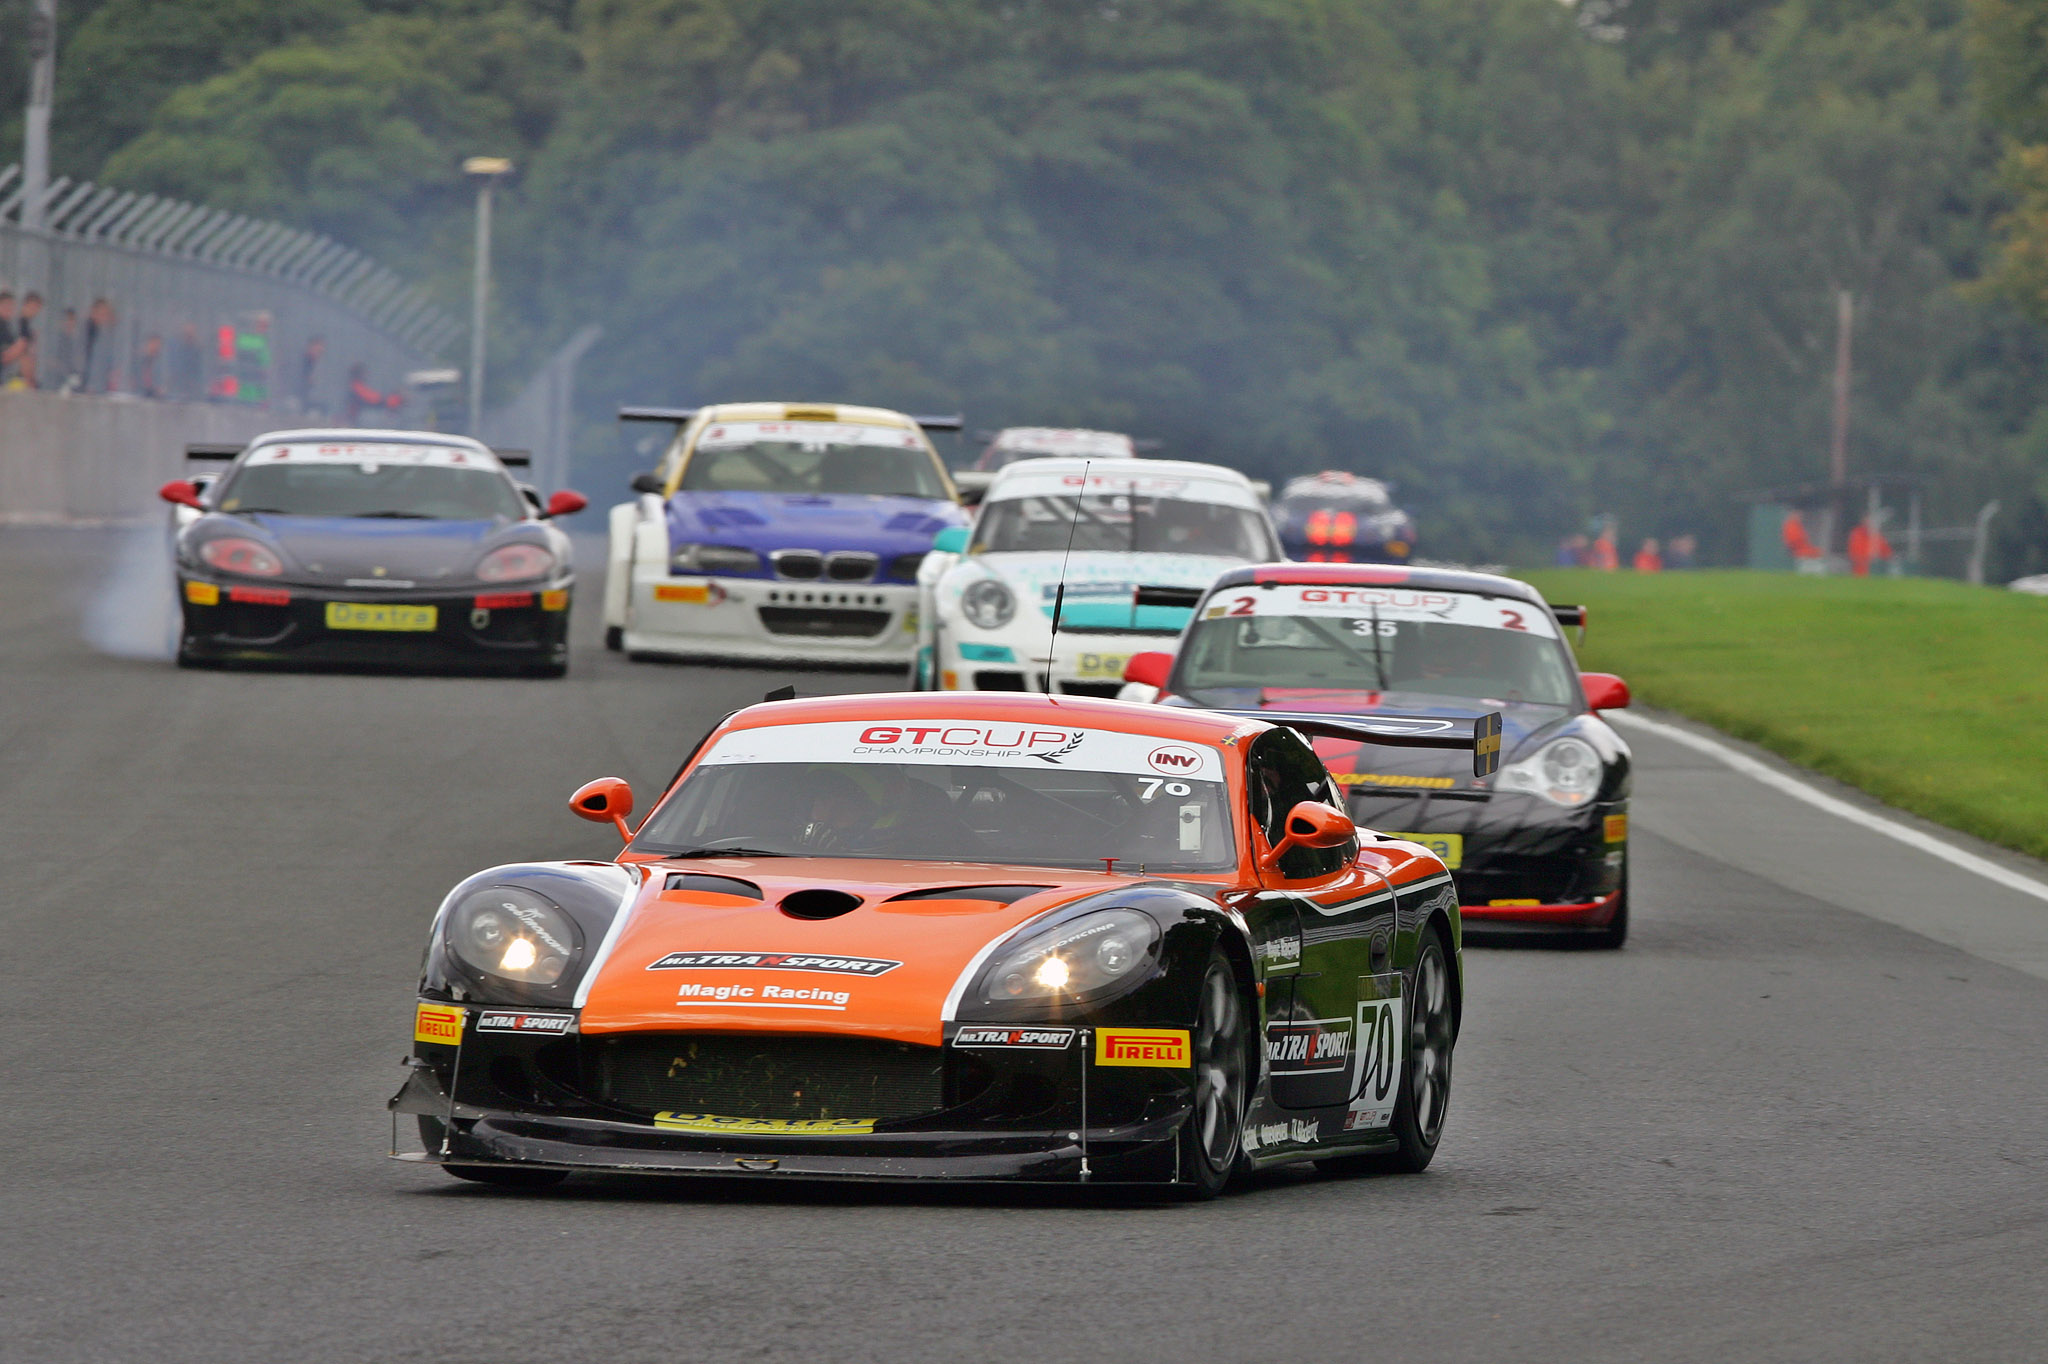 MSVR News - GT Cup 2011 Registration & Entry Forms are now available